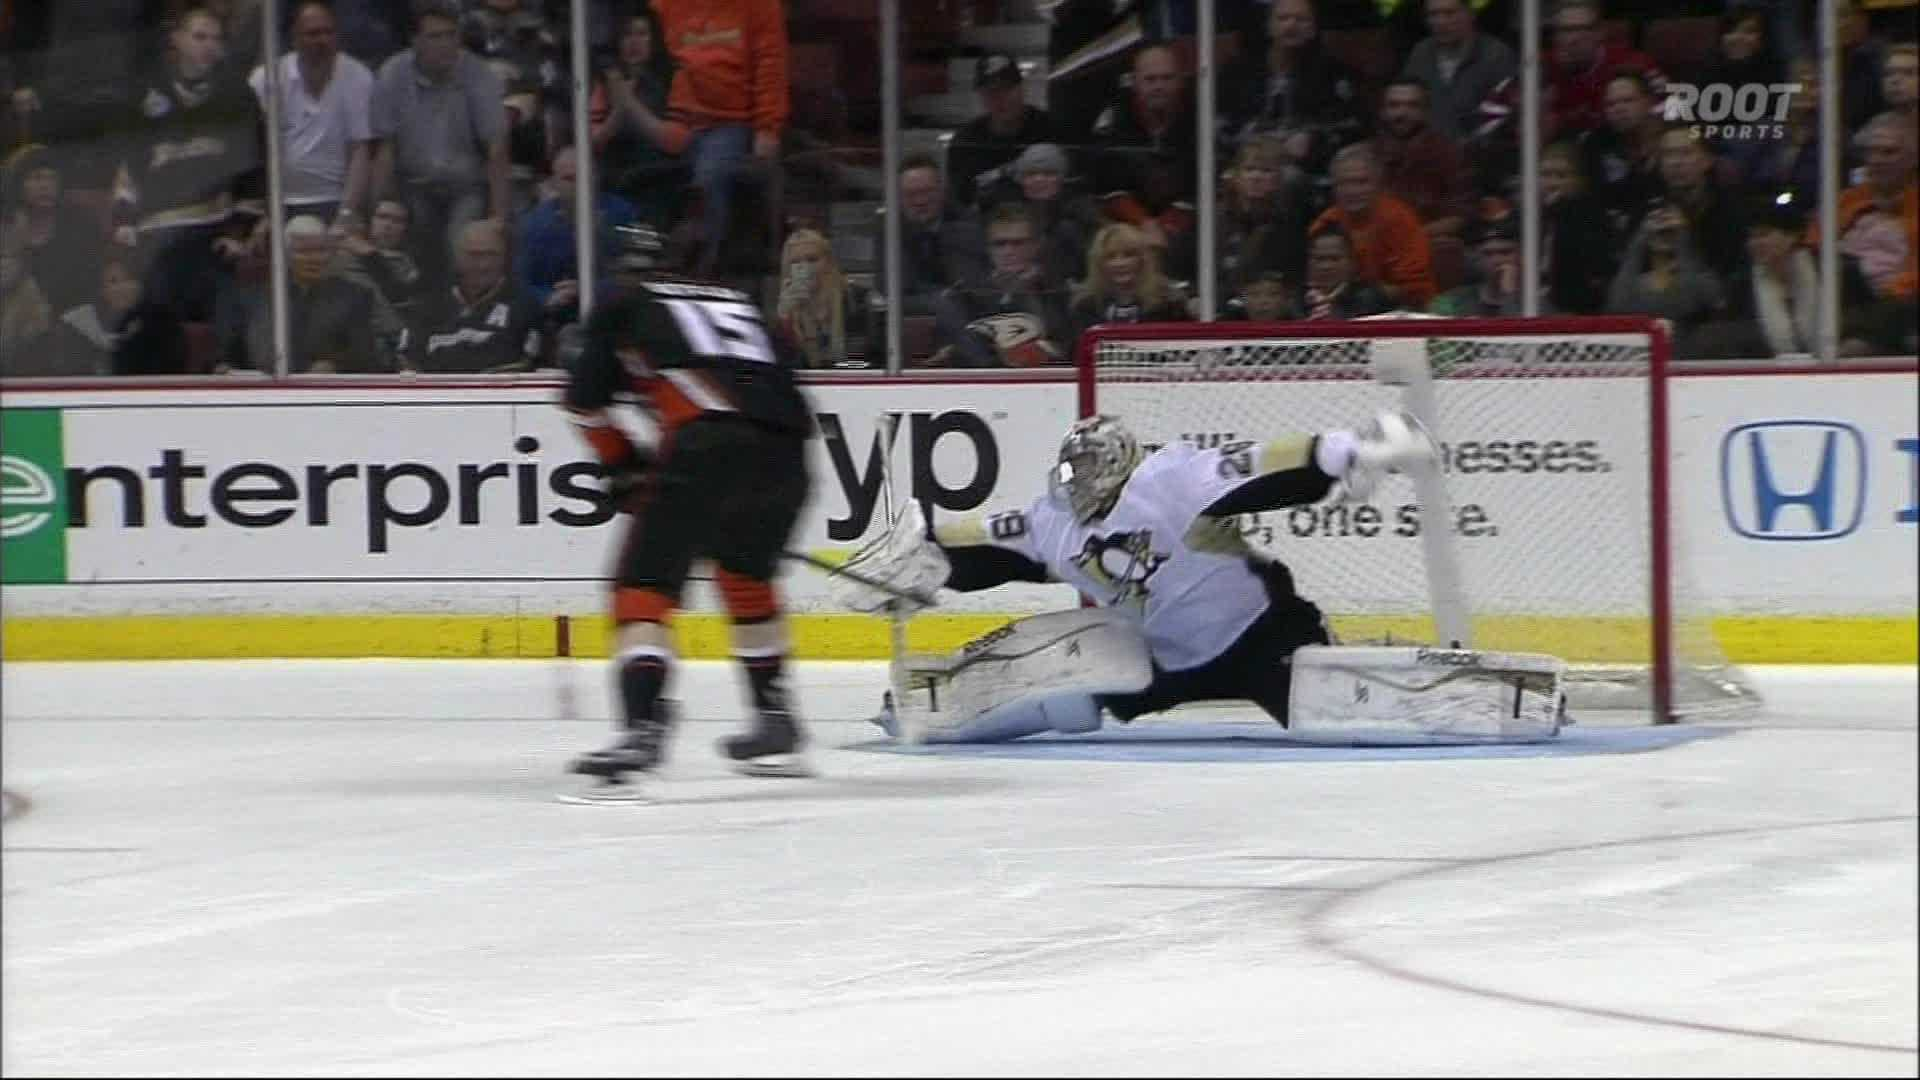 Ryan Getzlaf's shot missed the net as the Penguins beat the Ducks in a six-round shootout Friday night in Anaheim.